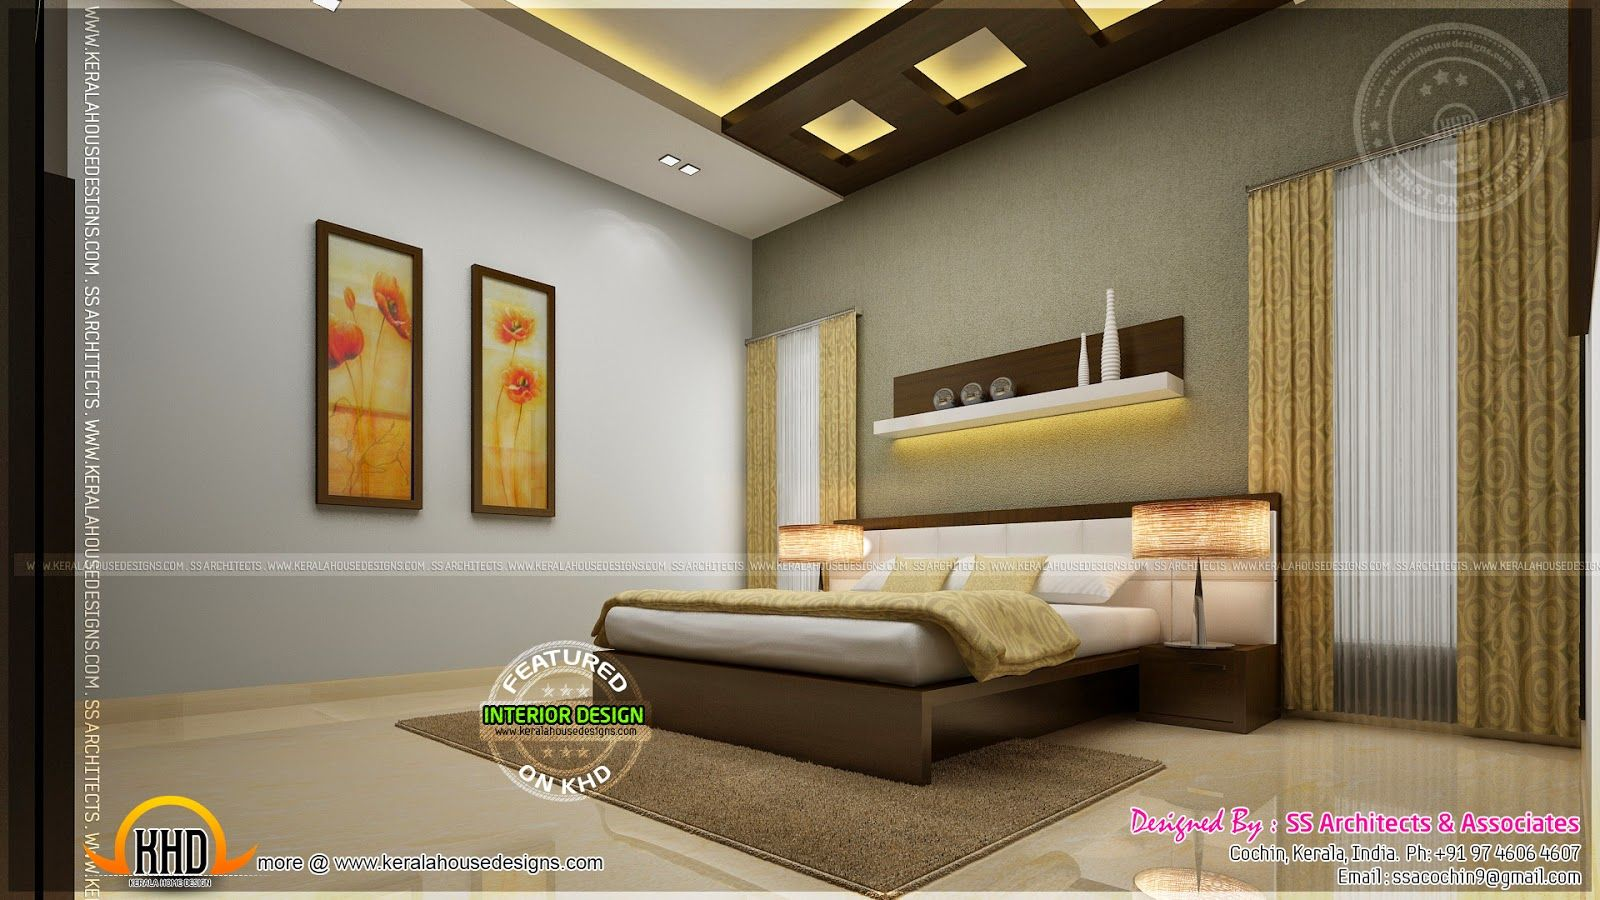 Indian master bedroom interior design google search for Home interior design ideas india